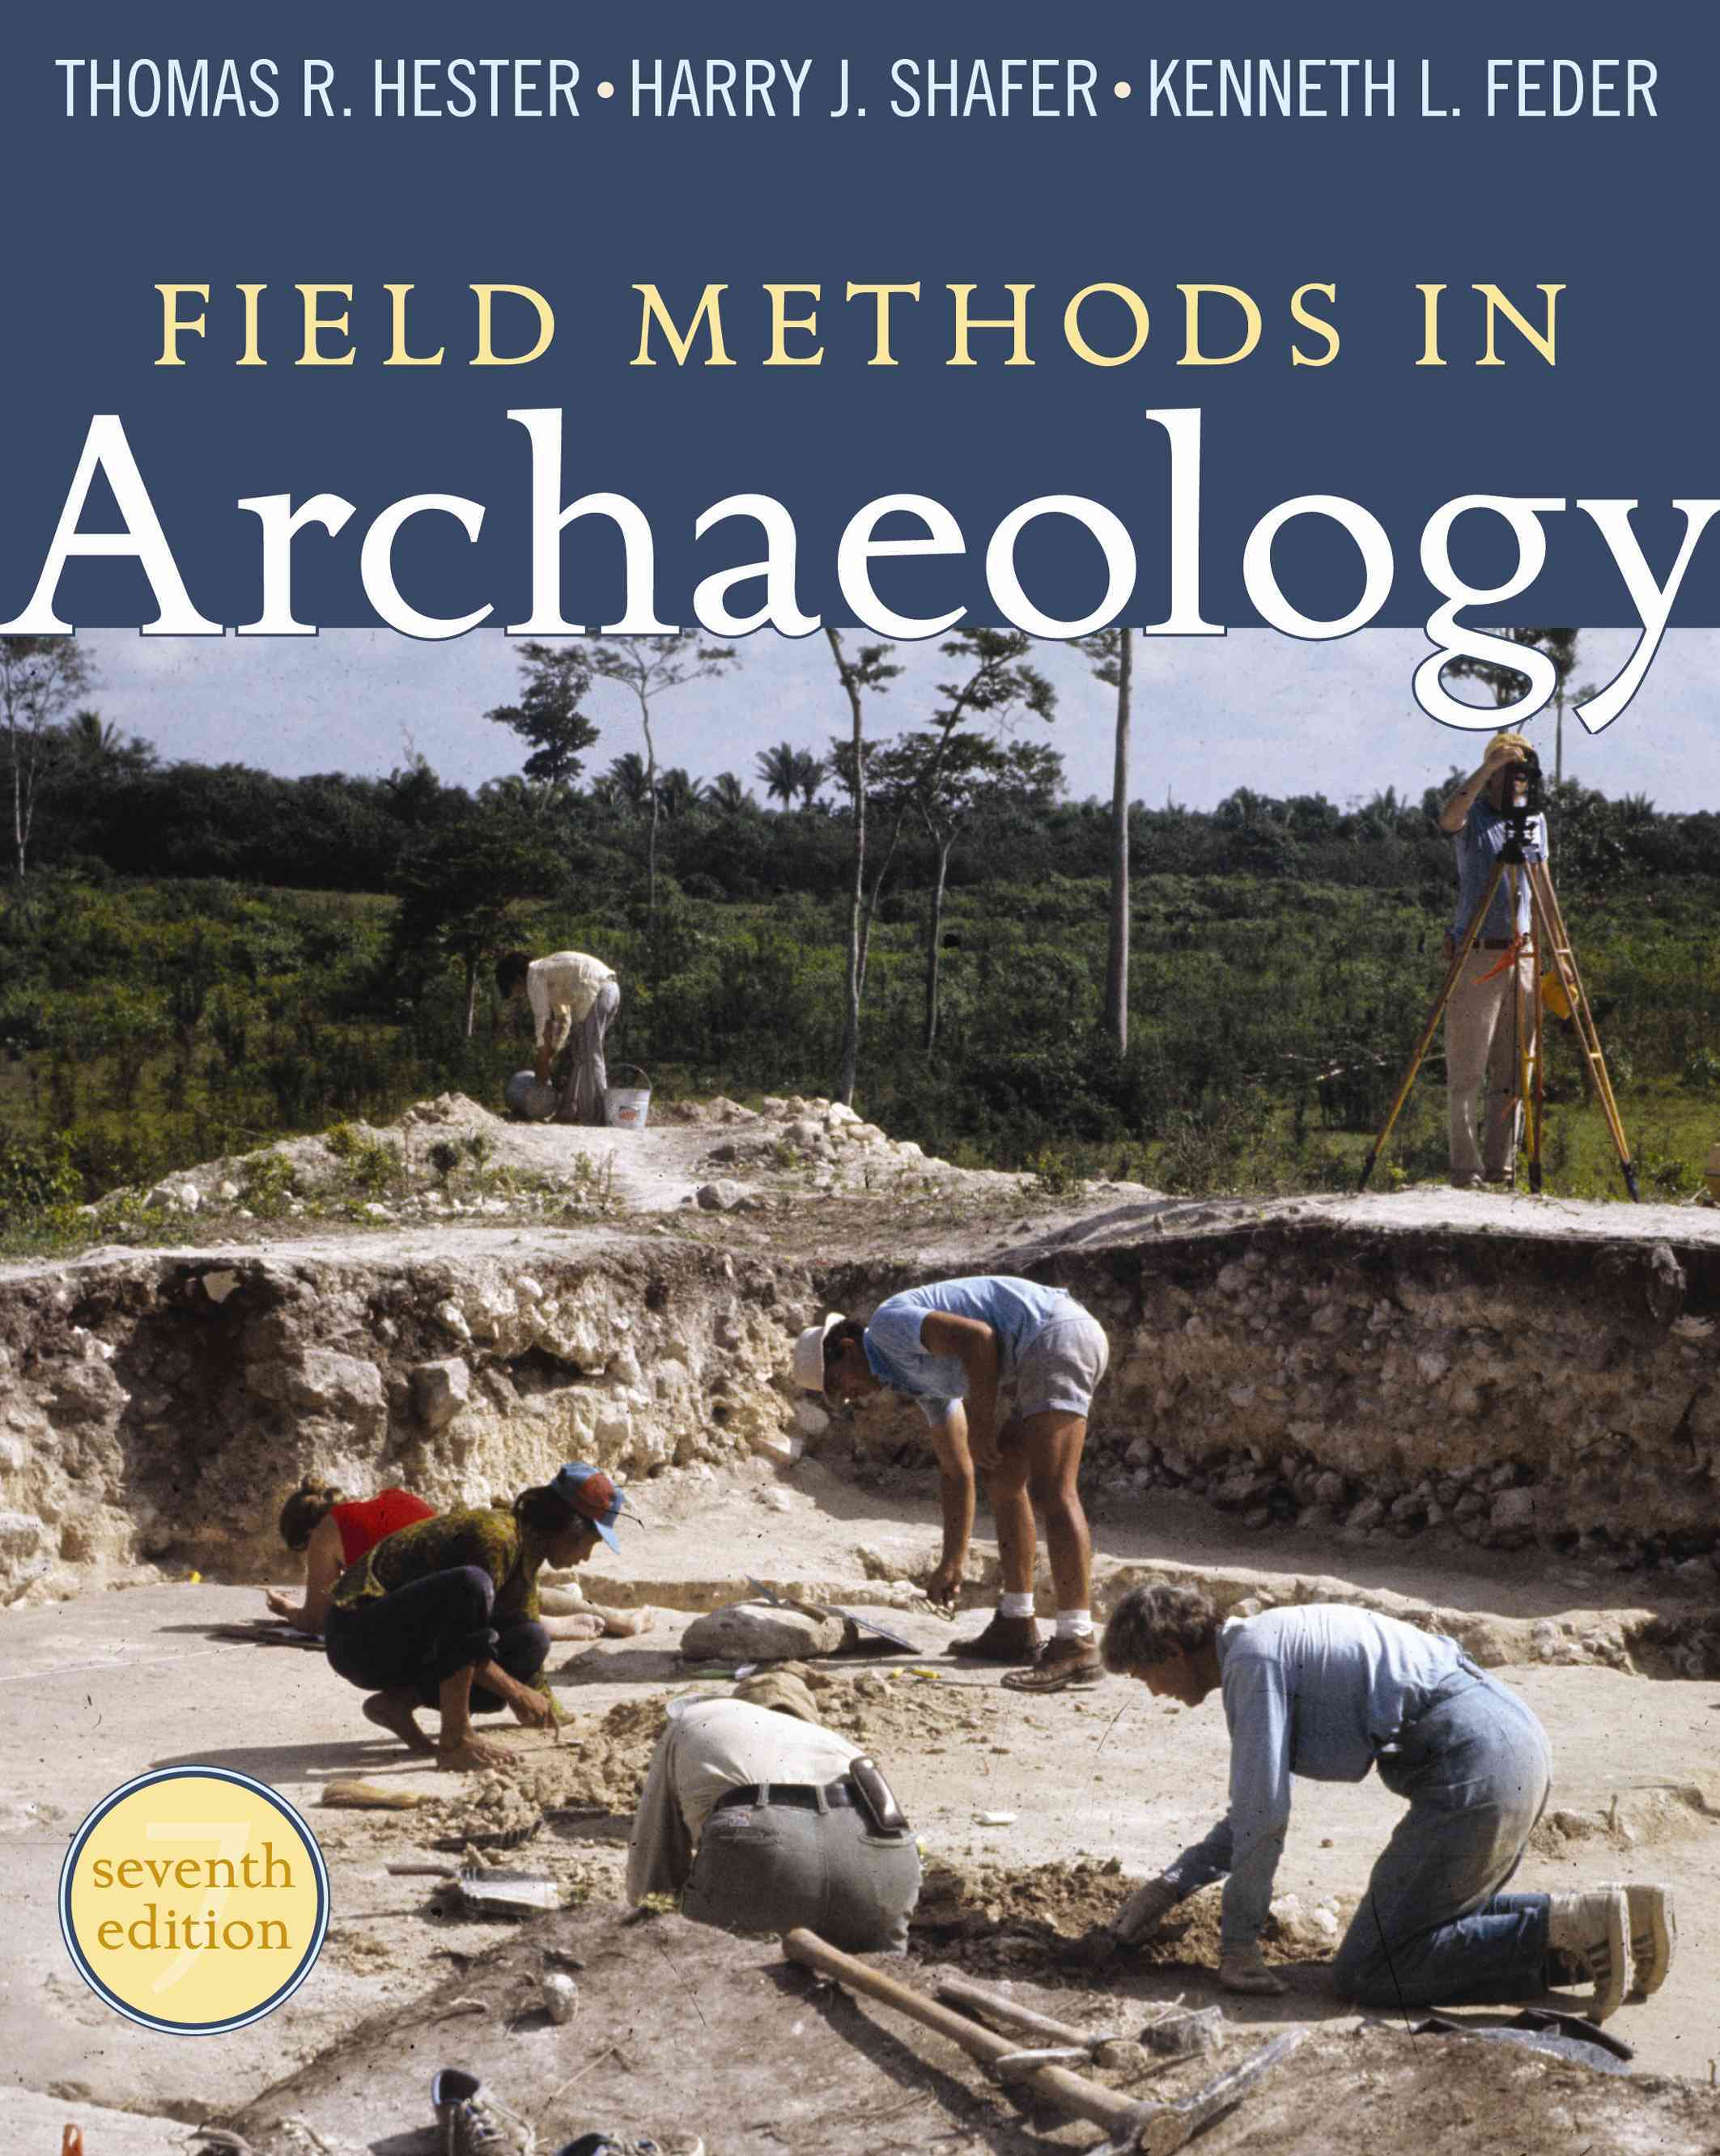 Field Methods in Archaeology By Hester, Thomas R./ Shafer, Harry J./ Feder, Kenneth L.